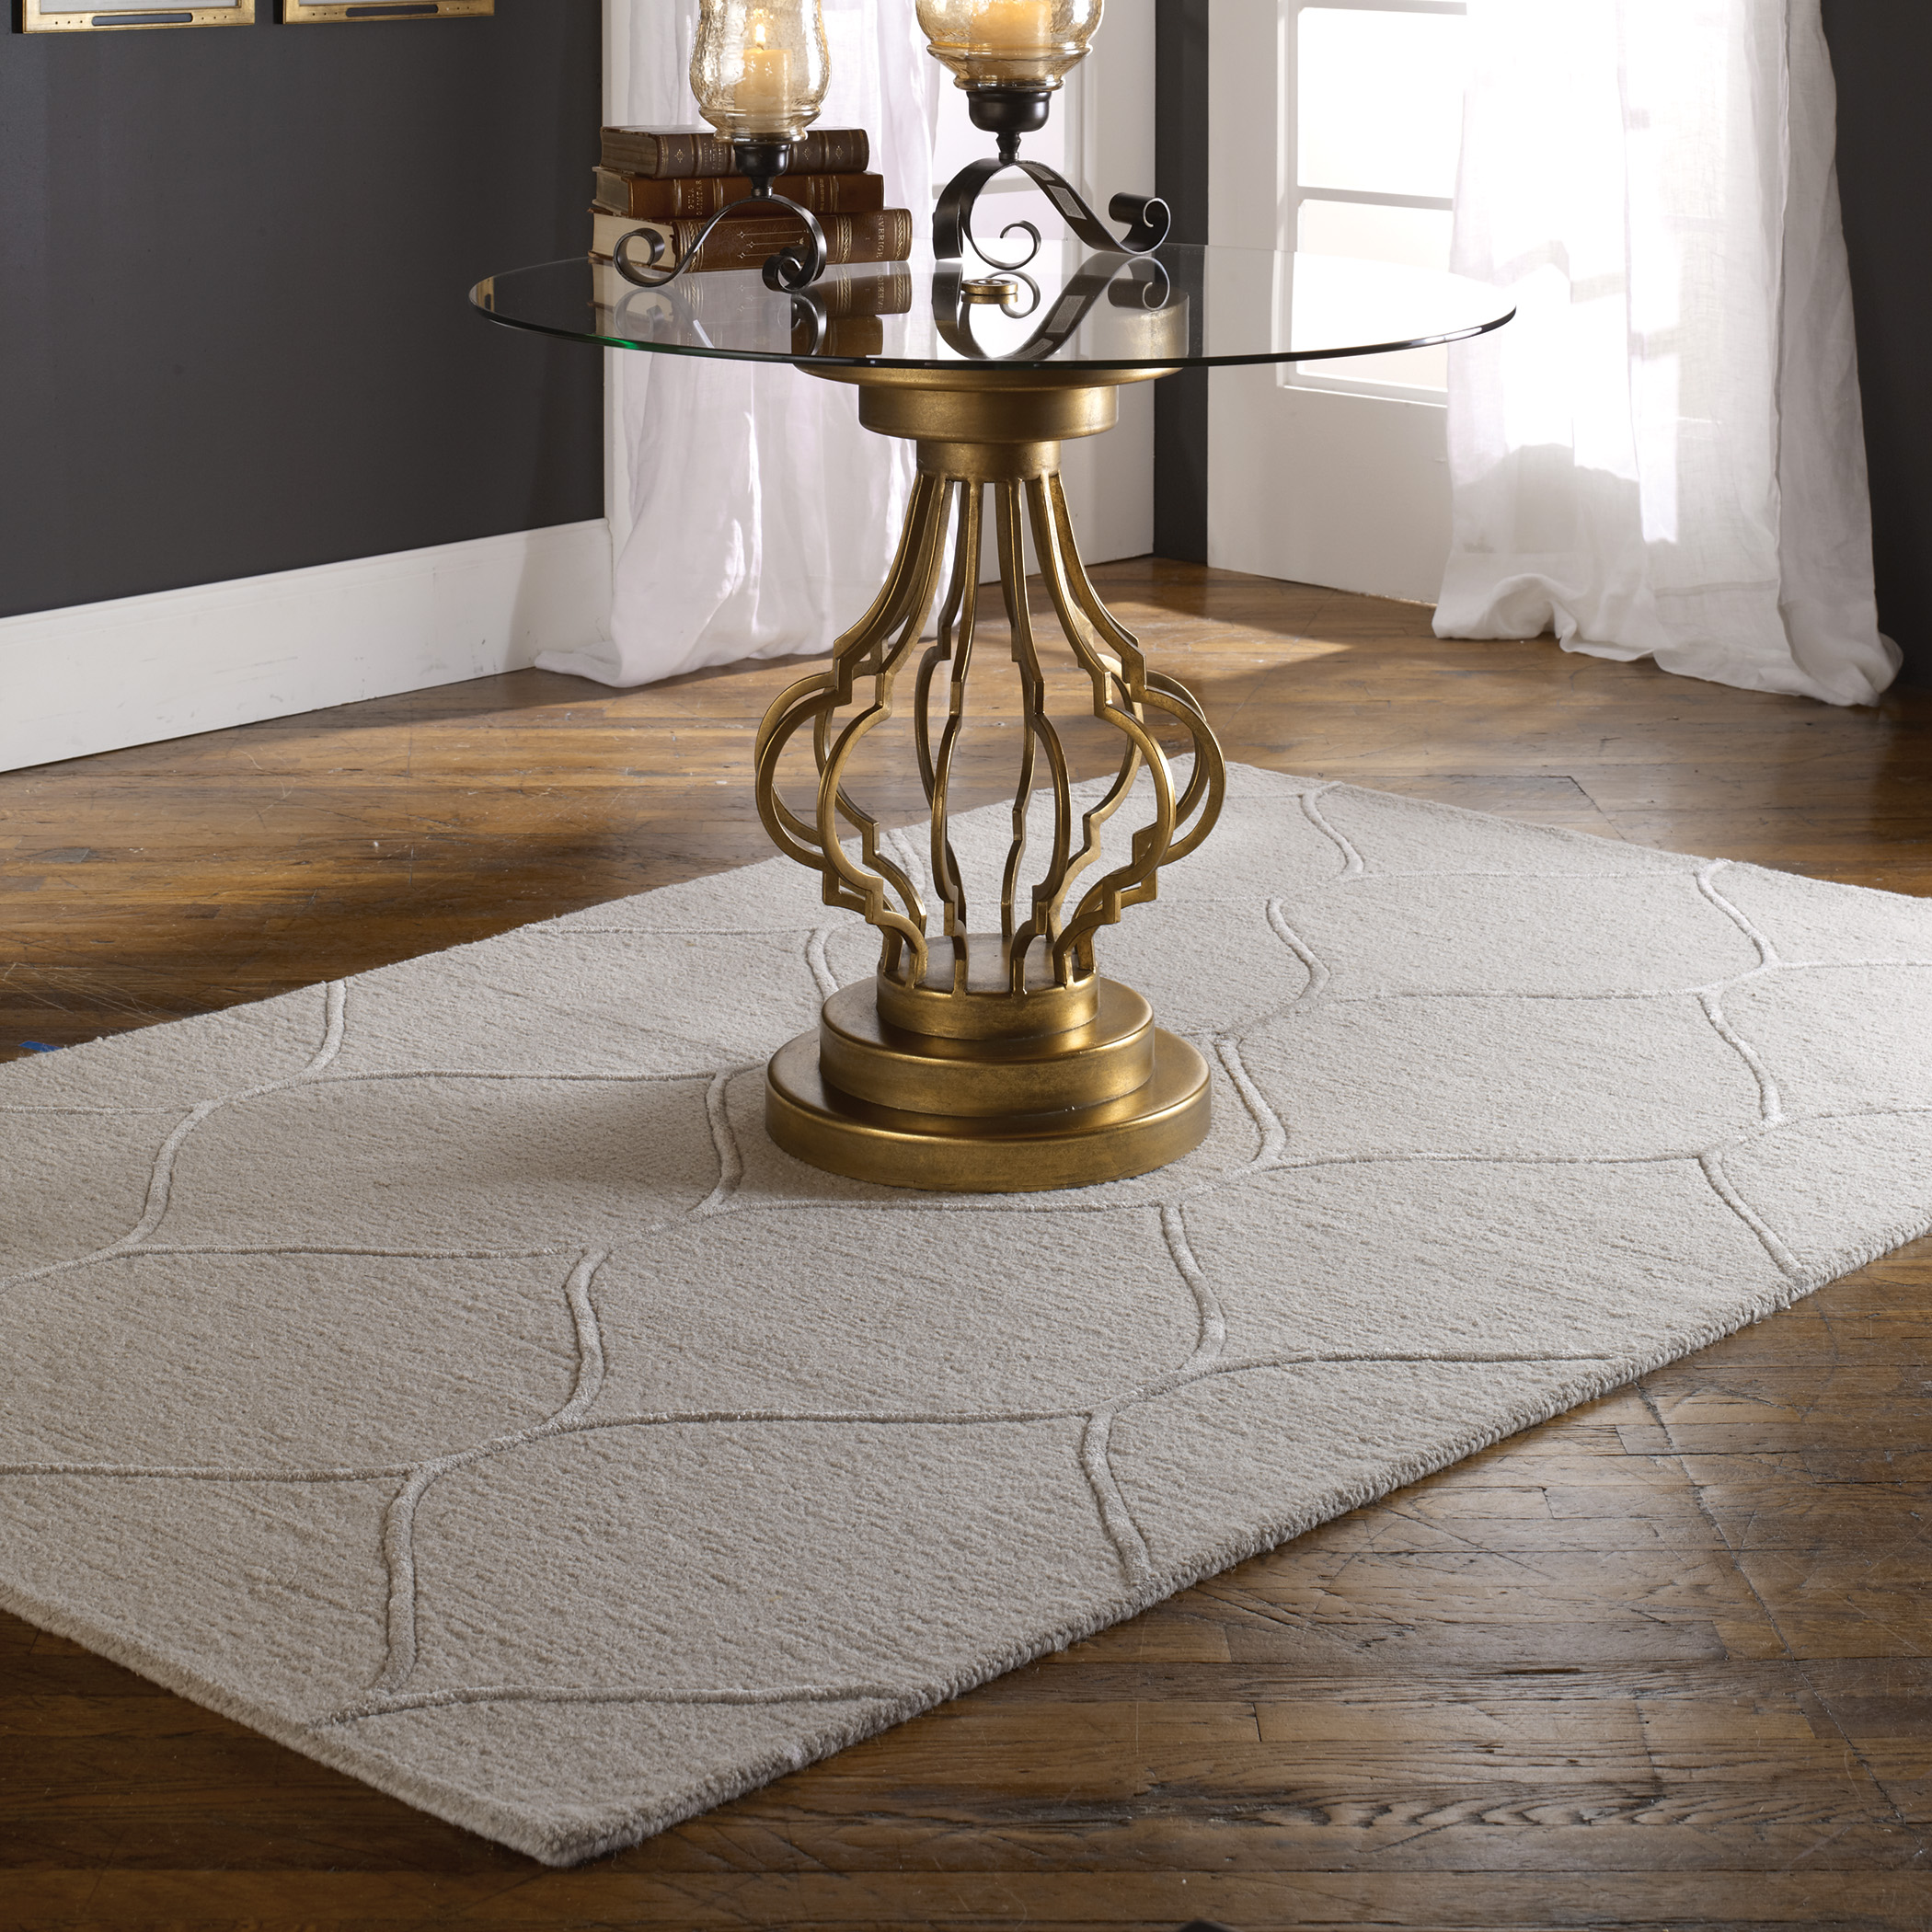 Uttermost Rugs Larache 5 X 8 Rug - Light Beige  - Item Number: 73062-5